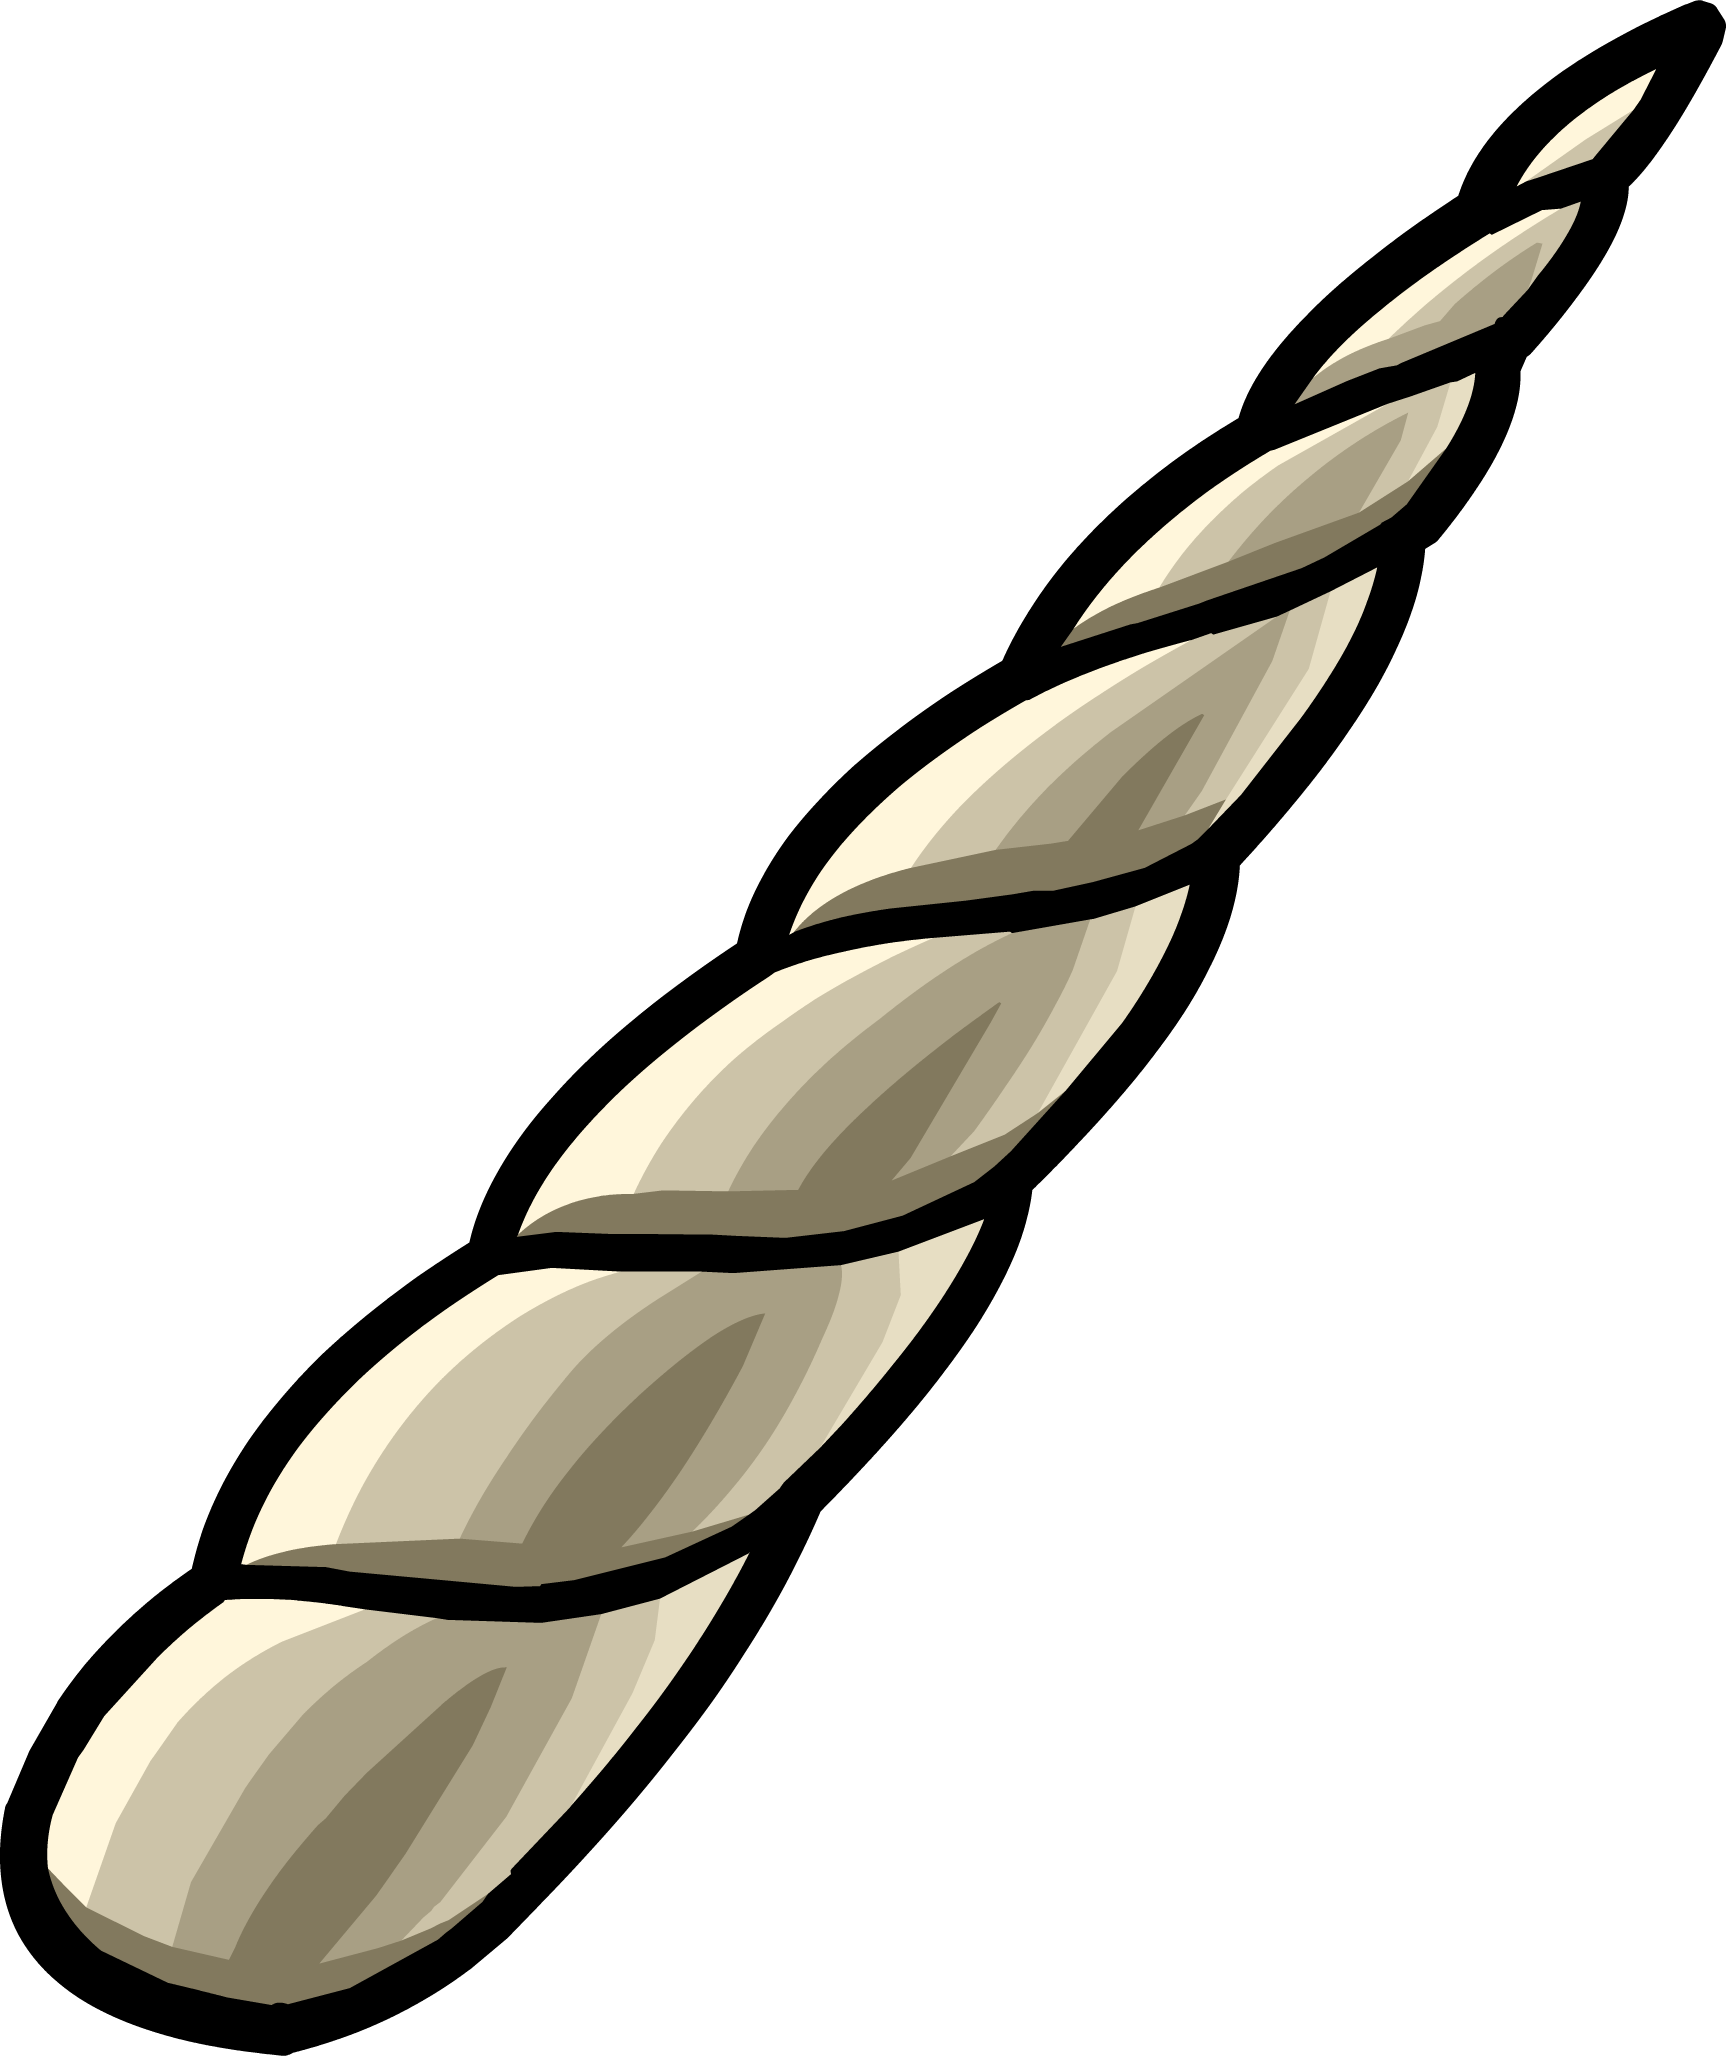 Unicorn horn png. Image club penguin wiki